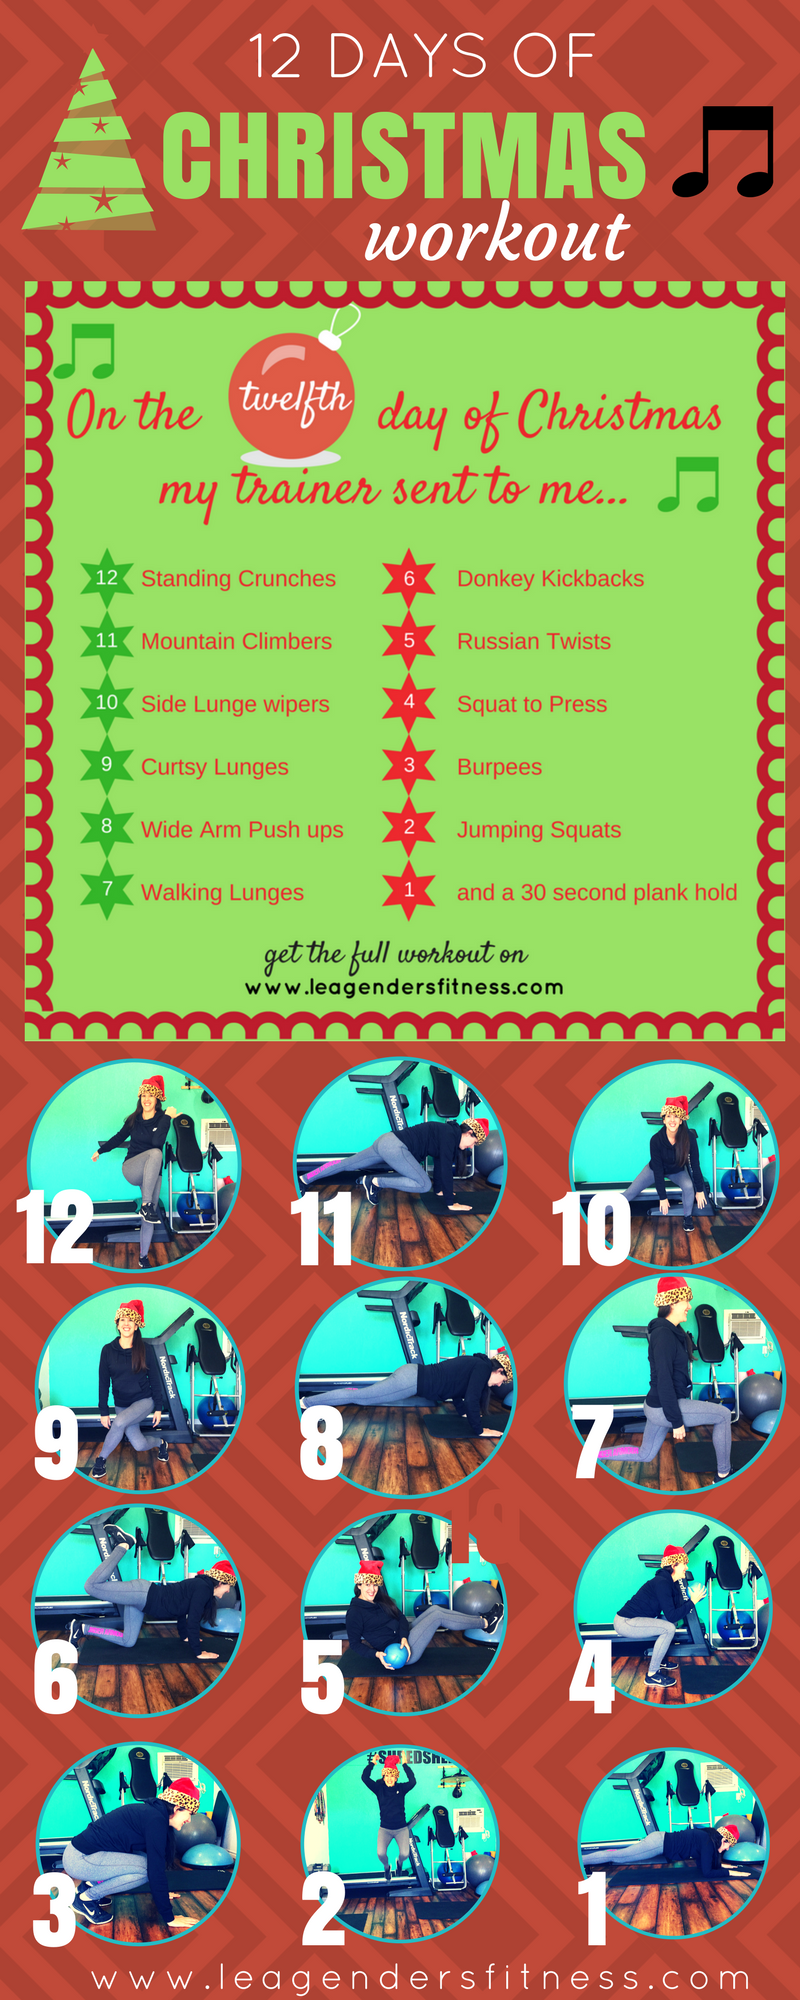 The 12 Days of Christmas holiday-themed workout. Save to Pinterest for later!